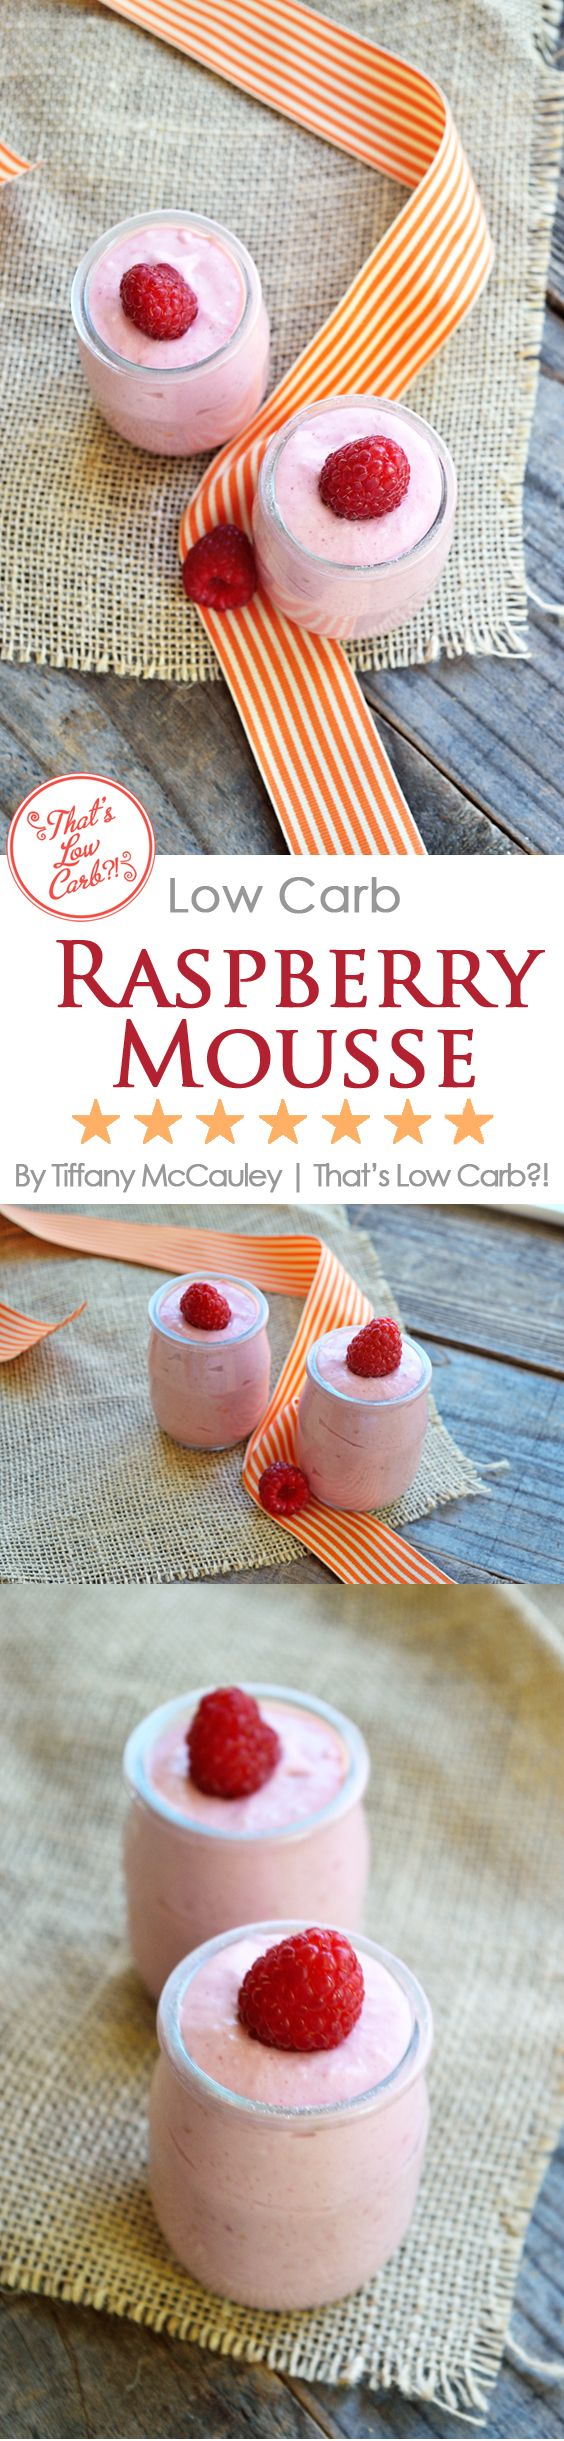 If an easy, low carb dessert is what you're looking for, you've found it! Using fresh summer berries and low carb ingredients, you won't miss out on a thing for dessert! ~ http://www.thatslowcarb.com